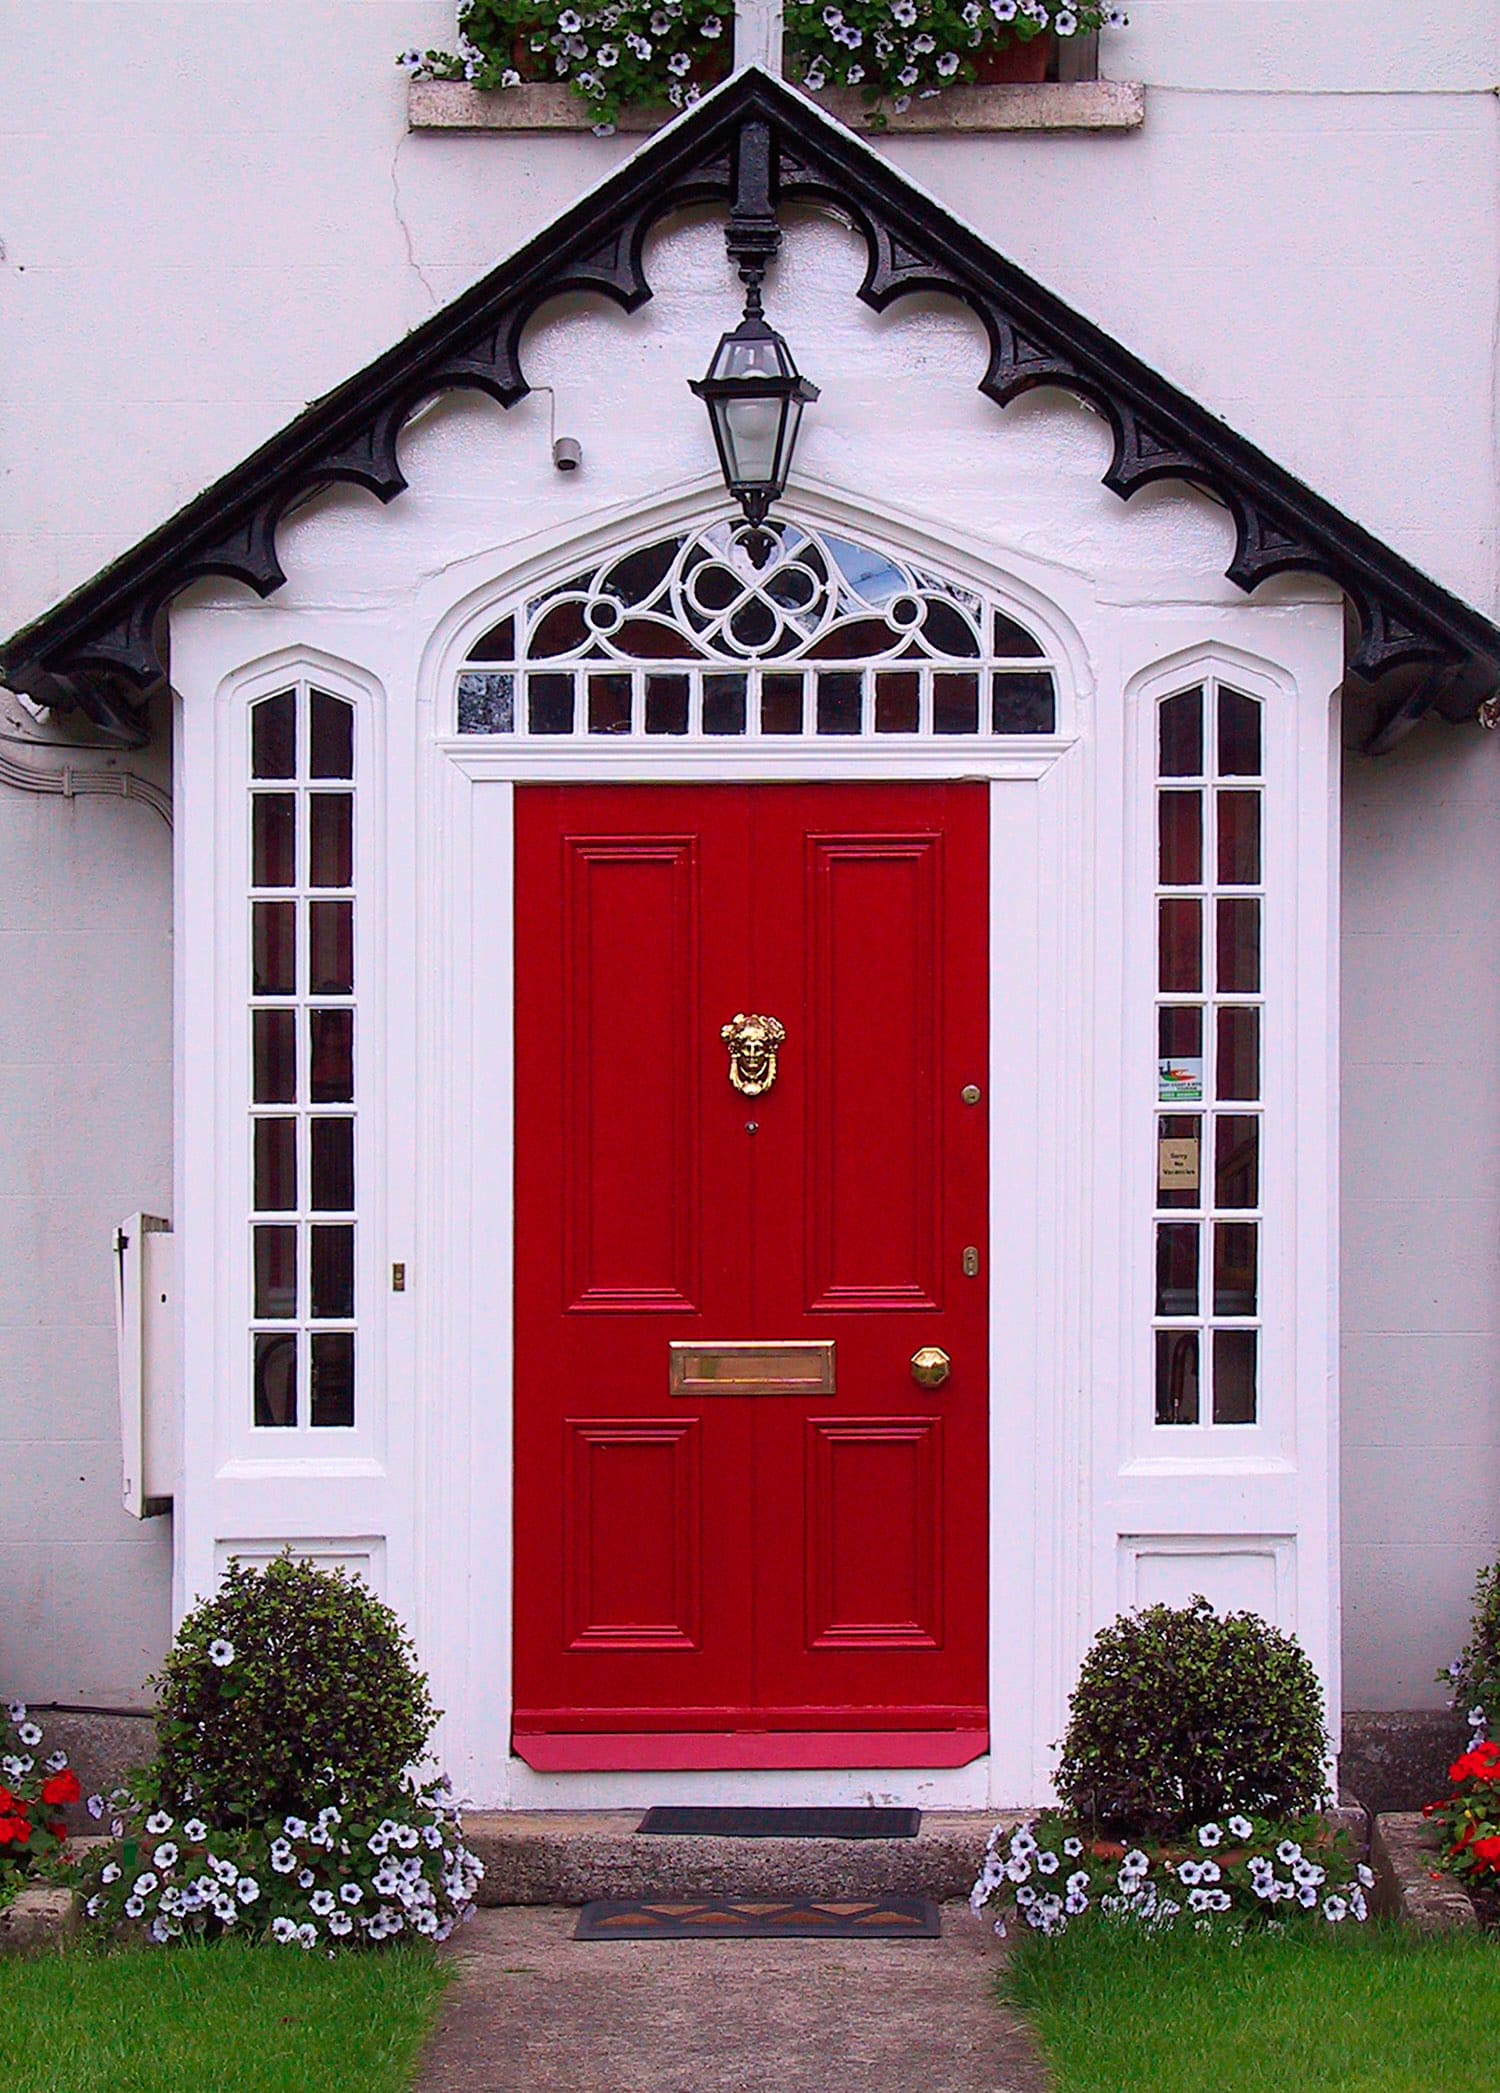 Flora brothers painting choosing the perfect color for - Popular front door colors ...